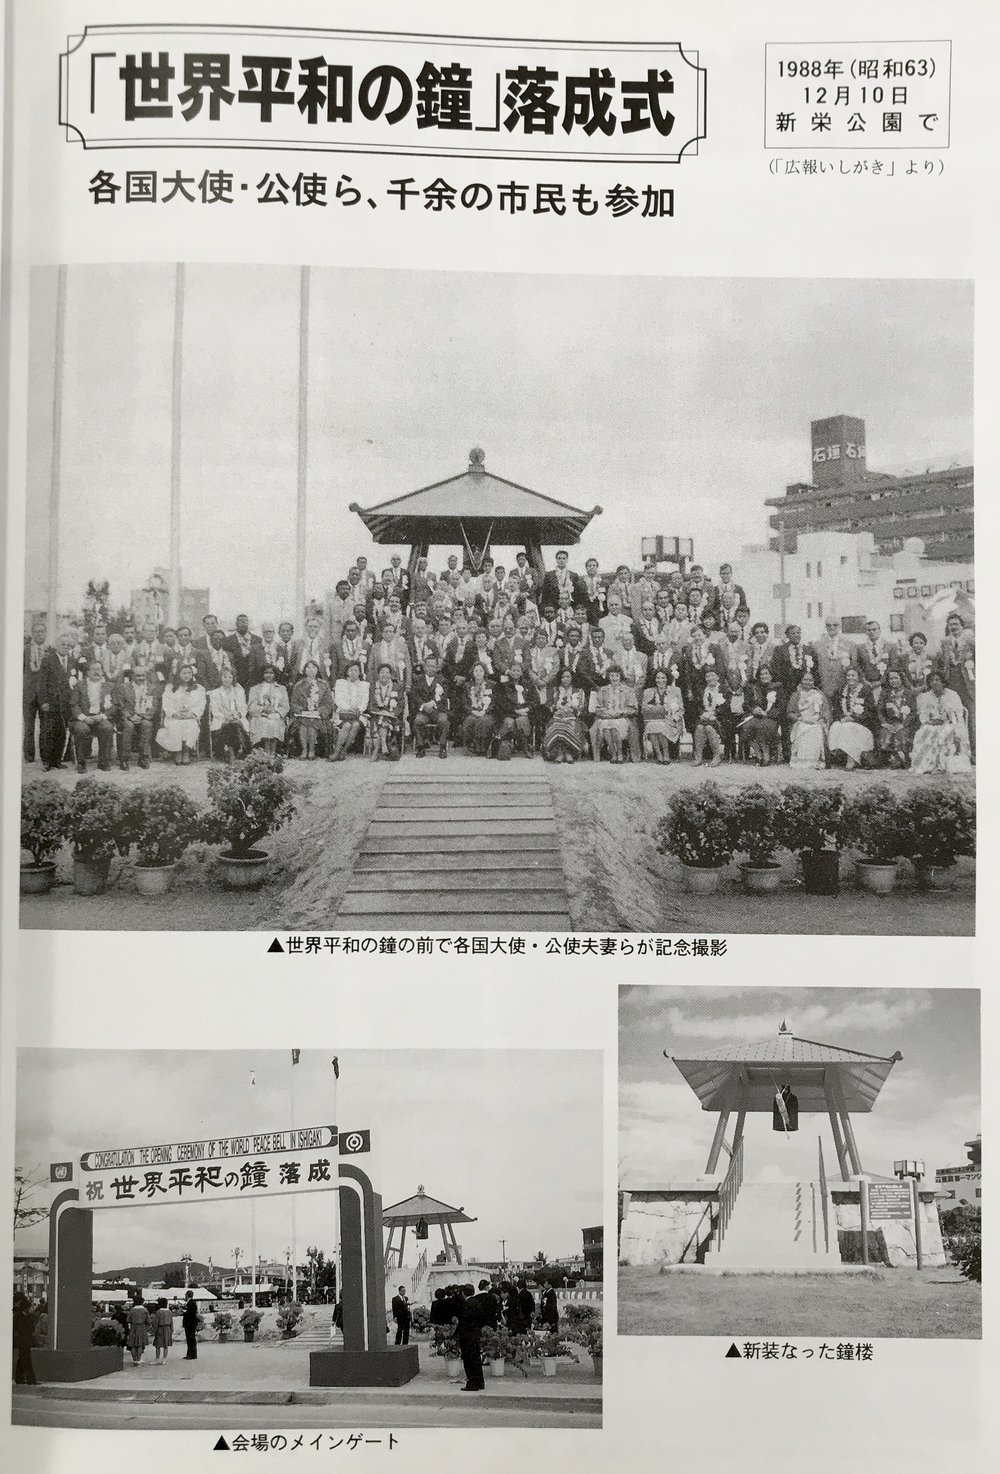 Photos of 72 diplomats and related guests gathered at Shinei Park in Ishigaki City in 1988.  Source : The 10th Anniversary Book published by World Peace Bell Okinawa Branch